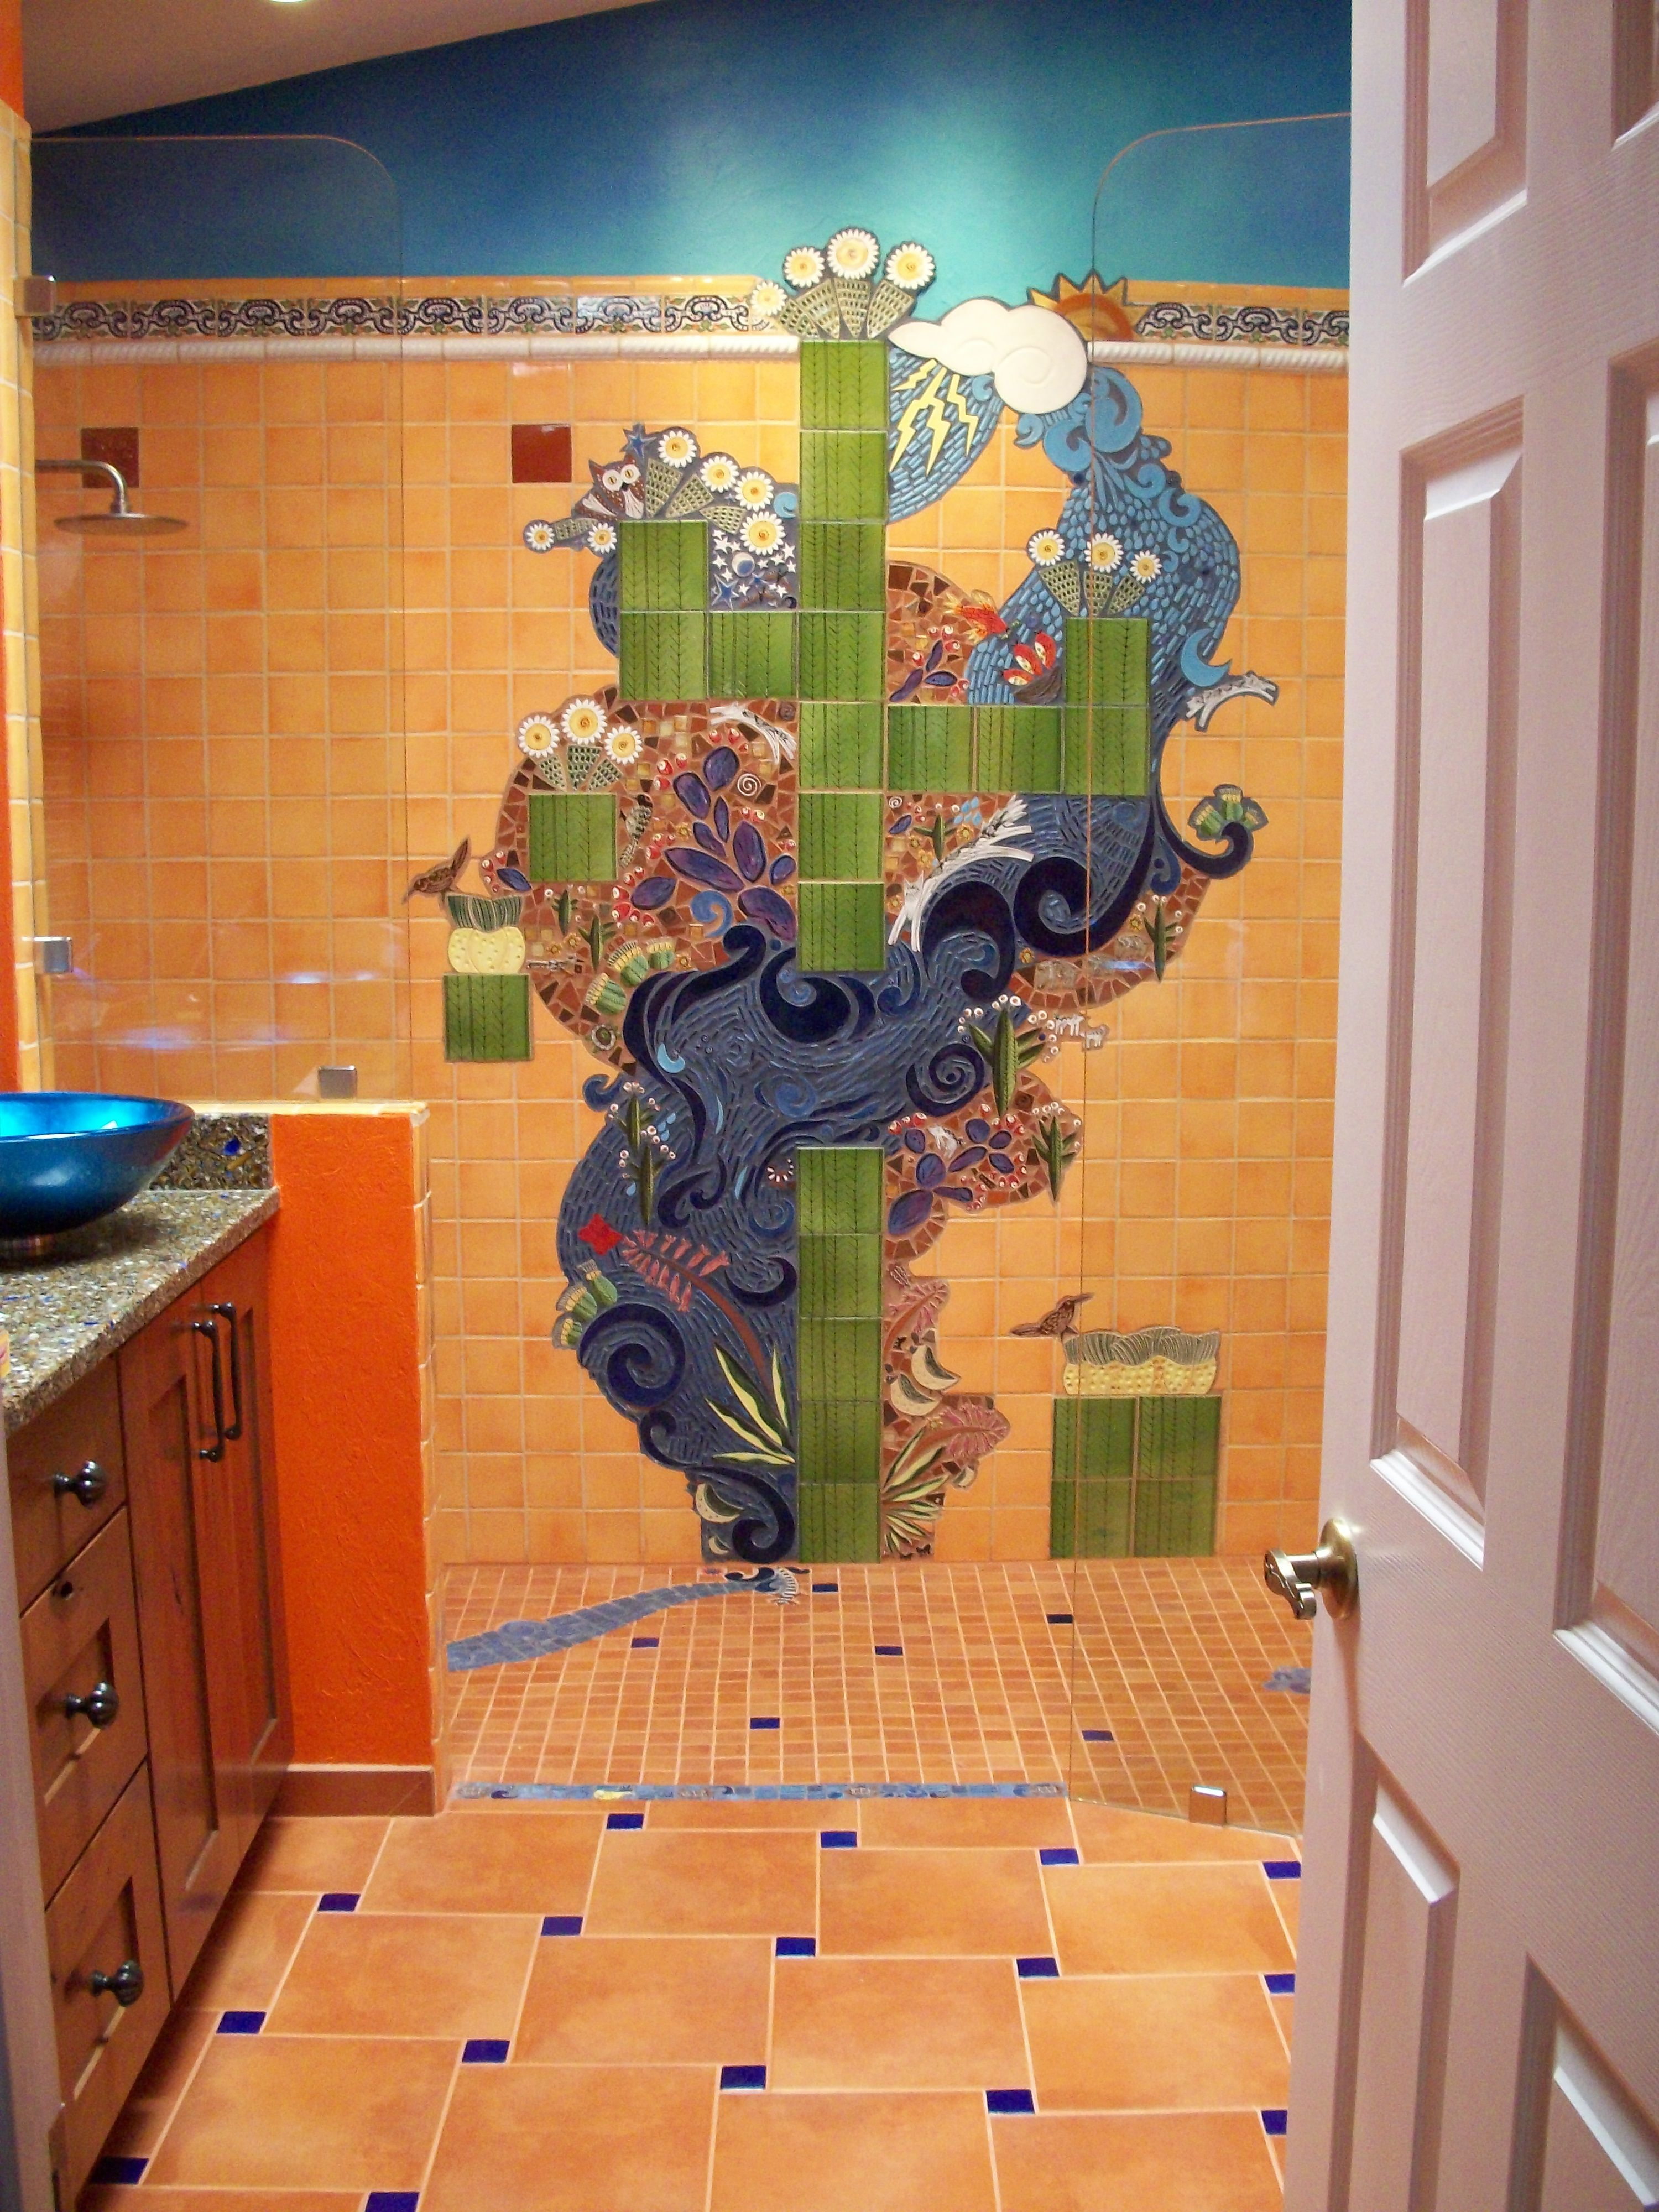 A perfect storm southwest style a commissioned handmade tile a perfect storm southwest style a commissioned for a bathroom wall custom designed by sondra etter santangelo theresa tile works artist donna stoner amipublicfo Choice Image